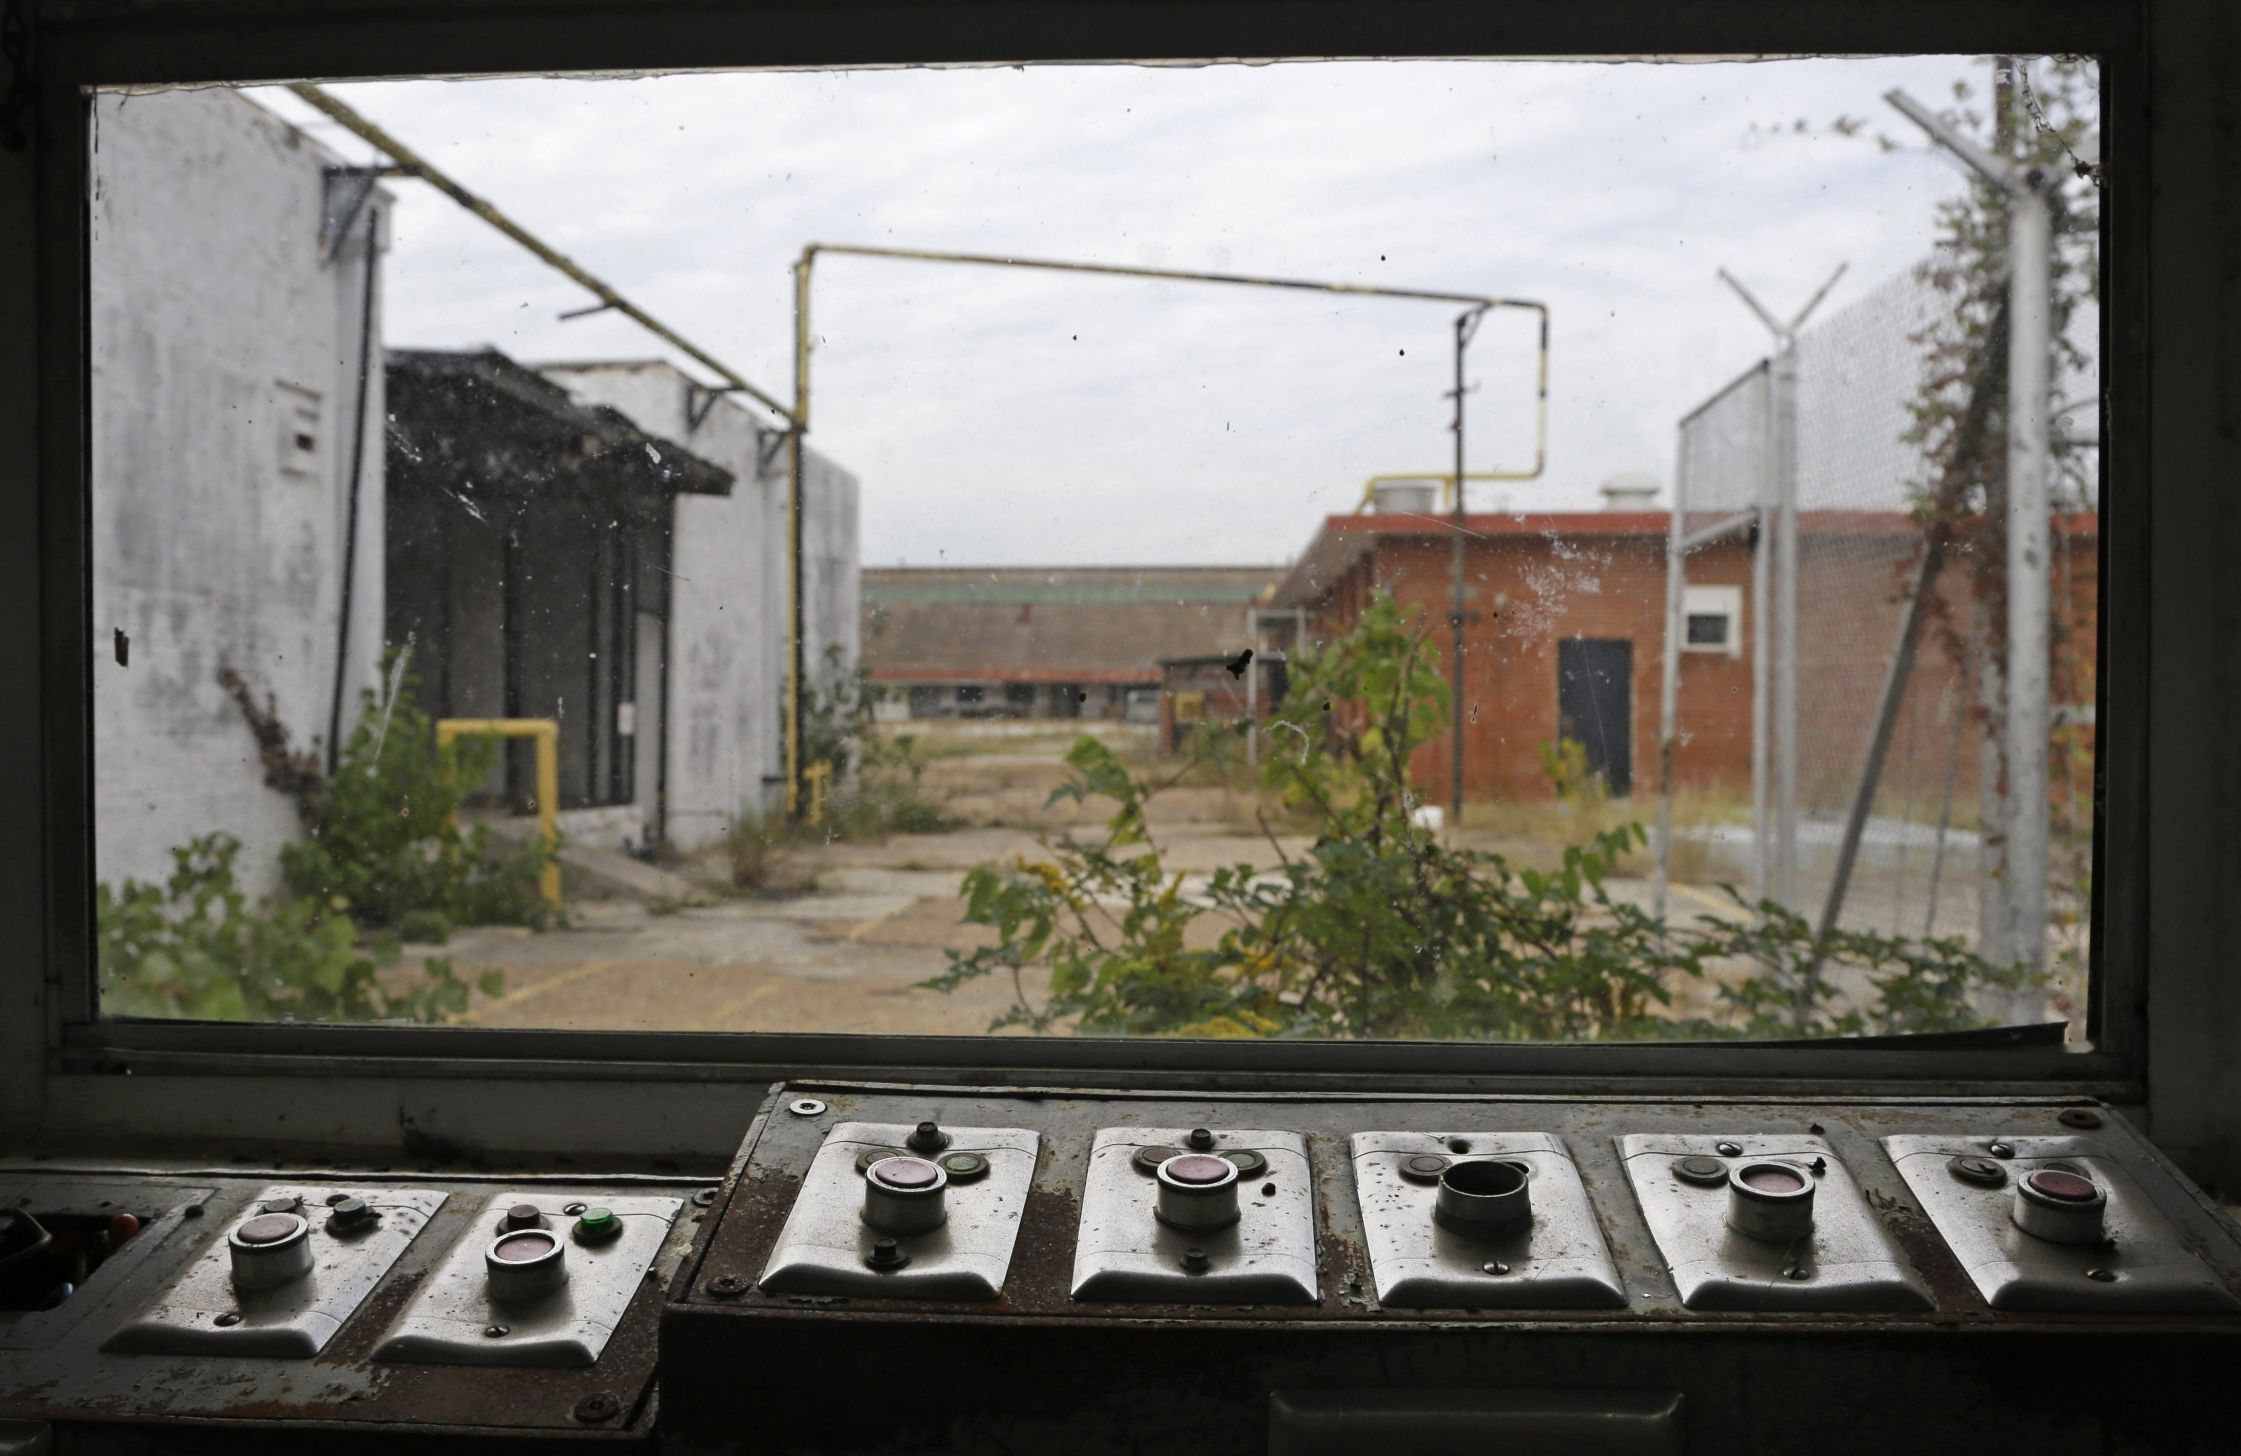 After operating for 112 years, the Central Unit Prison in